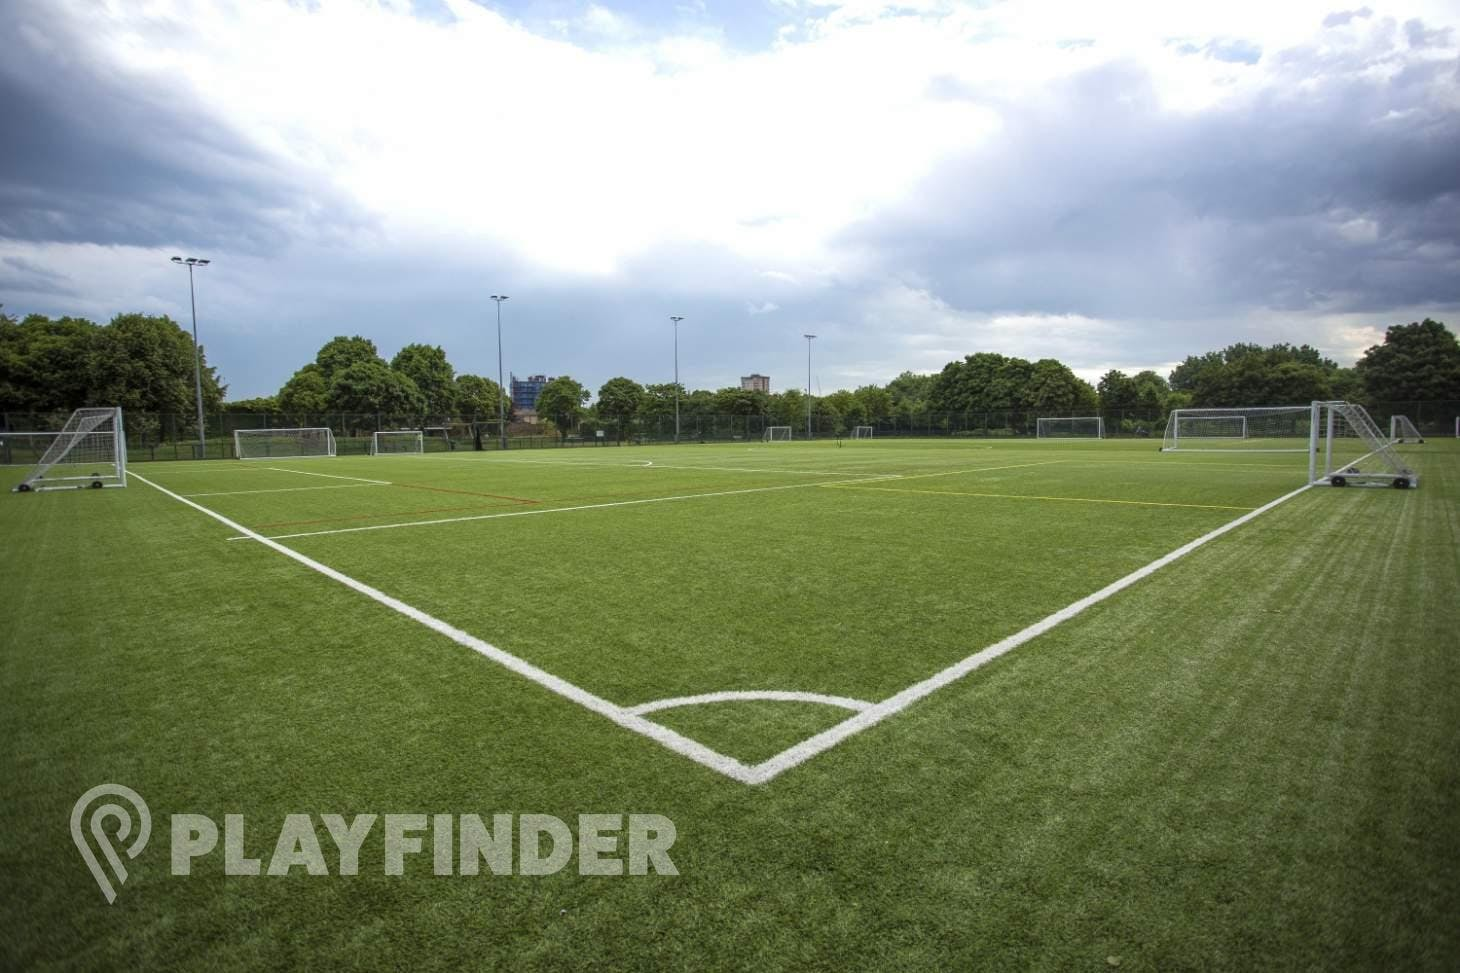 Haggerston Park 11 a side | 3G Astroturf football pitch